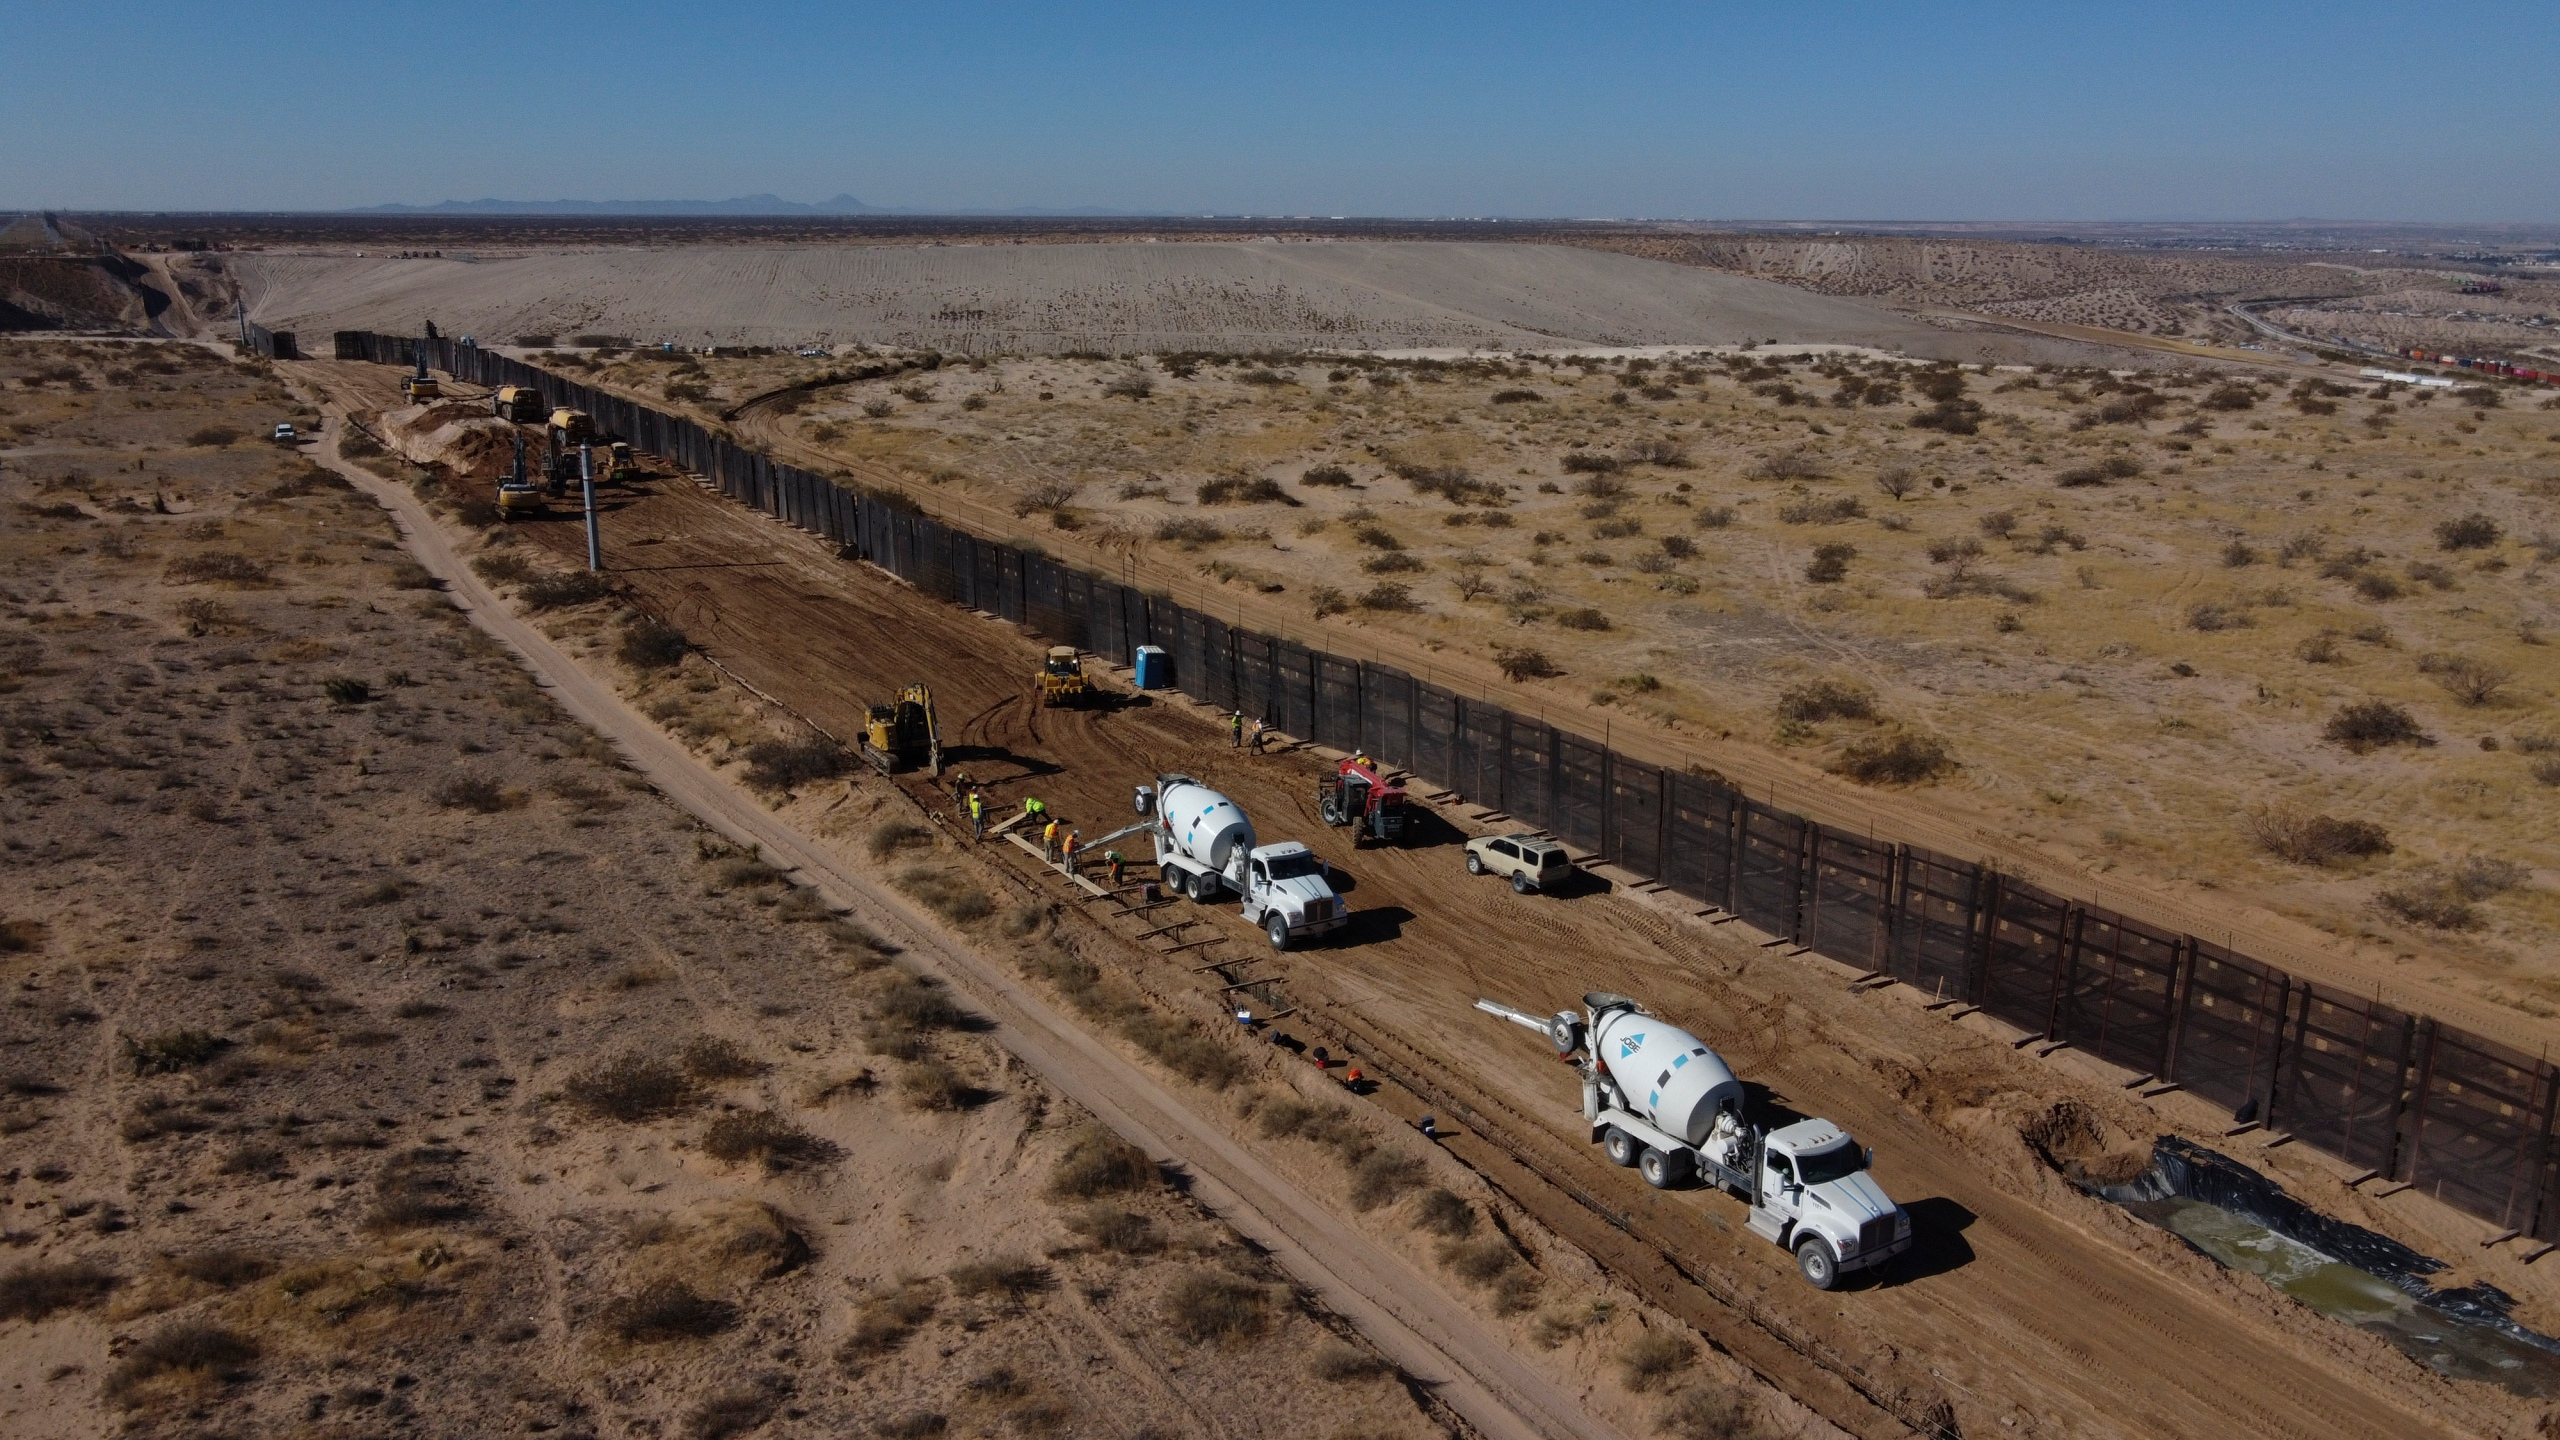 Workers prepare the foundation for a steel section of border wall that will be built on the Mexican side of older metal fencing dividing Ciudad Juarez, Mexico from Sunland Park, New Mexico, on Jan. 12, 2021. (Christian Chavez / Associated Press)